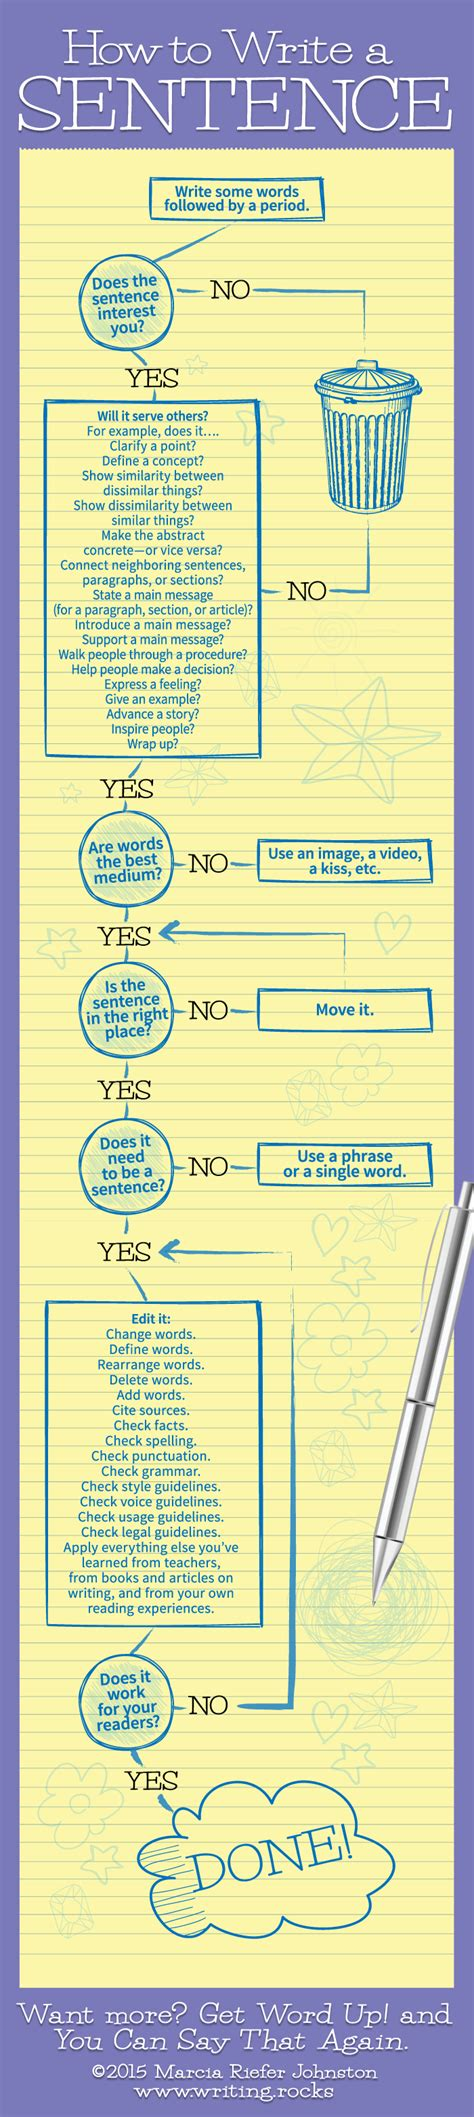 How To Write A Sentence [infographic]…  Chris The Story